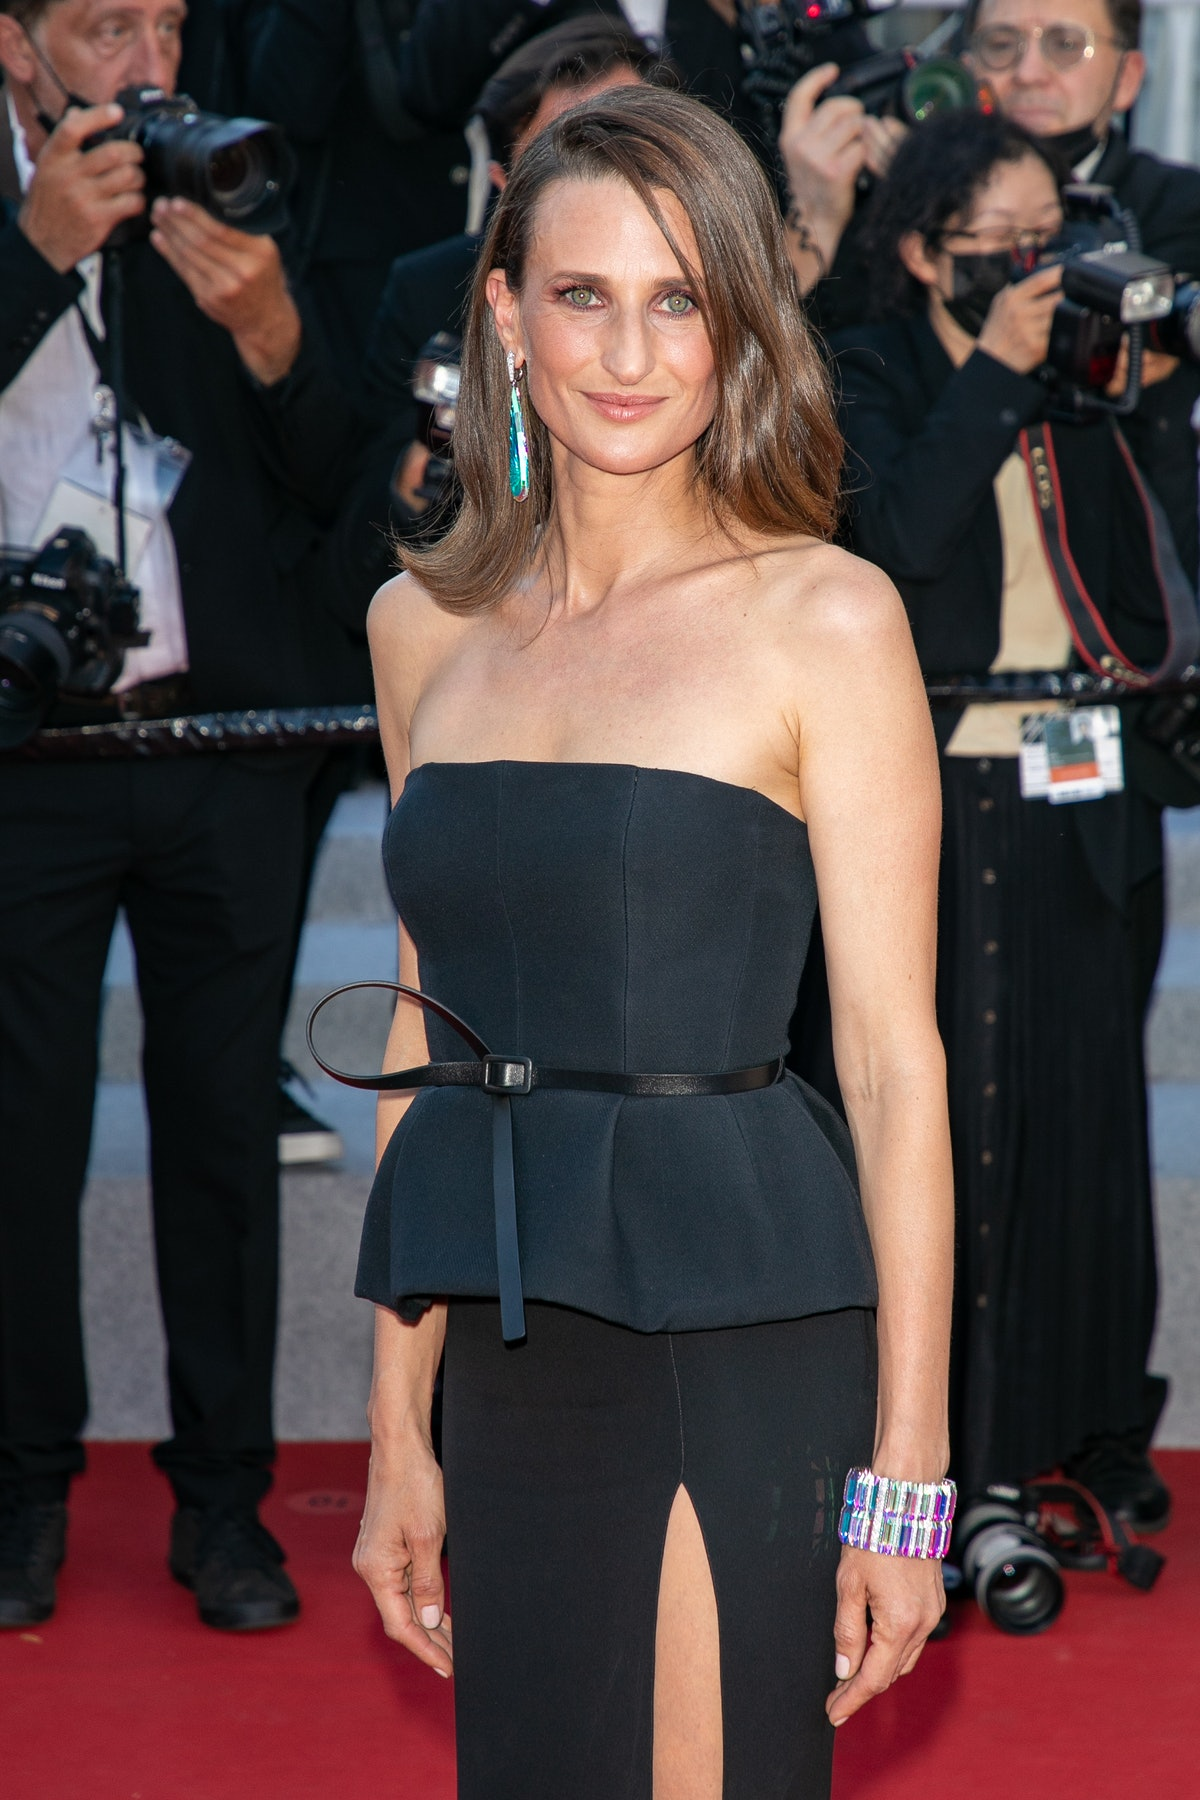 """CANNES, FRANCE - JULY 08: Actress Camille Cottin attends the """"Stillwater"""" screening during the 74th annual Cannes Film Festival on July 08, 2021 in Cannes, France. (Photo by Marc Piasecki/FilmMagic)"""